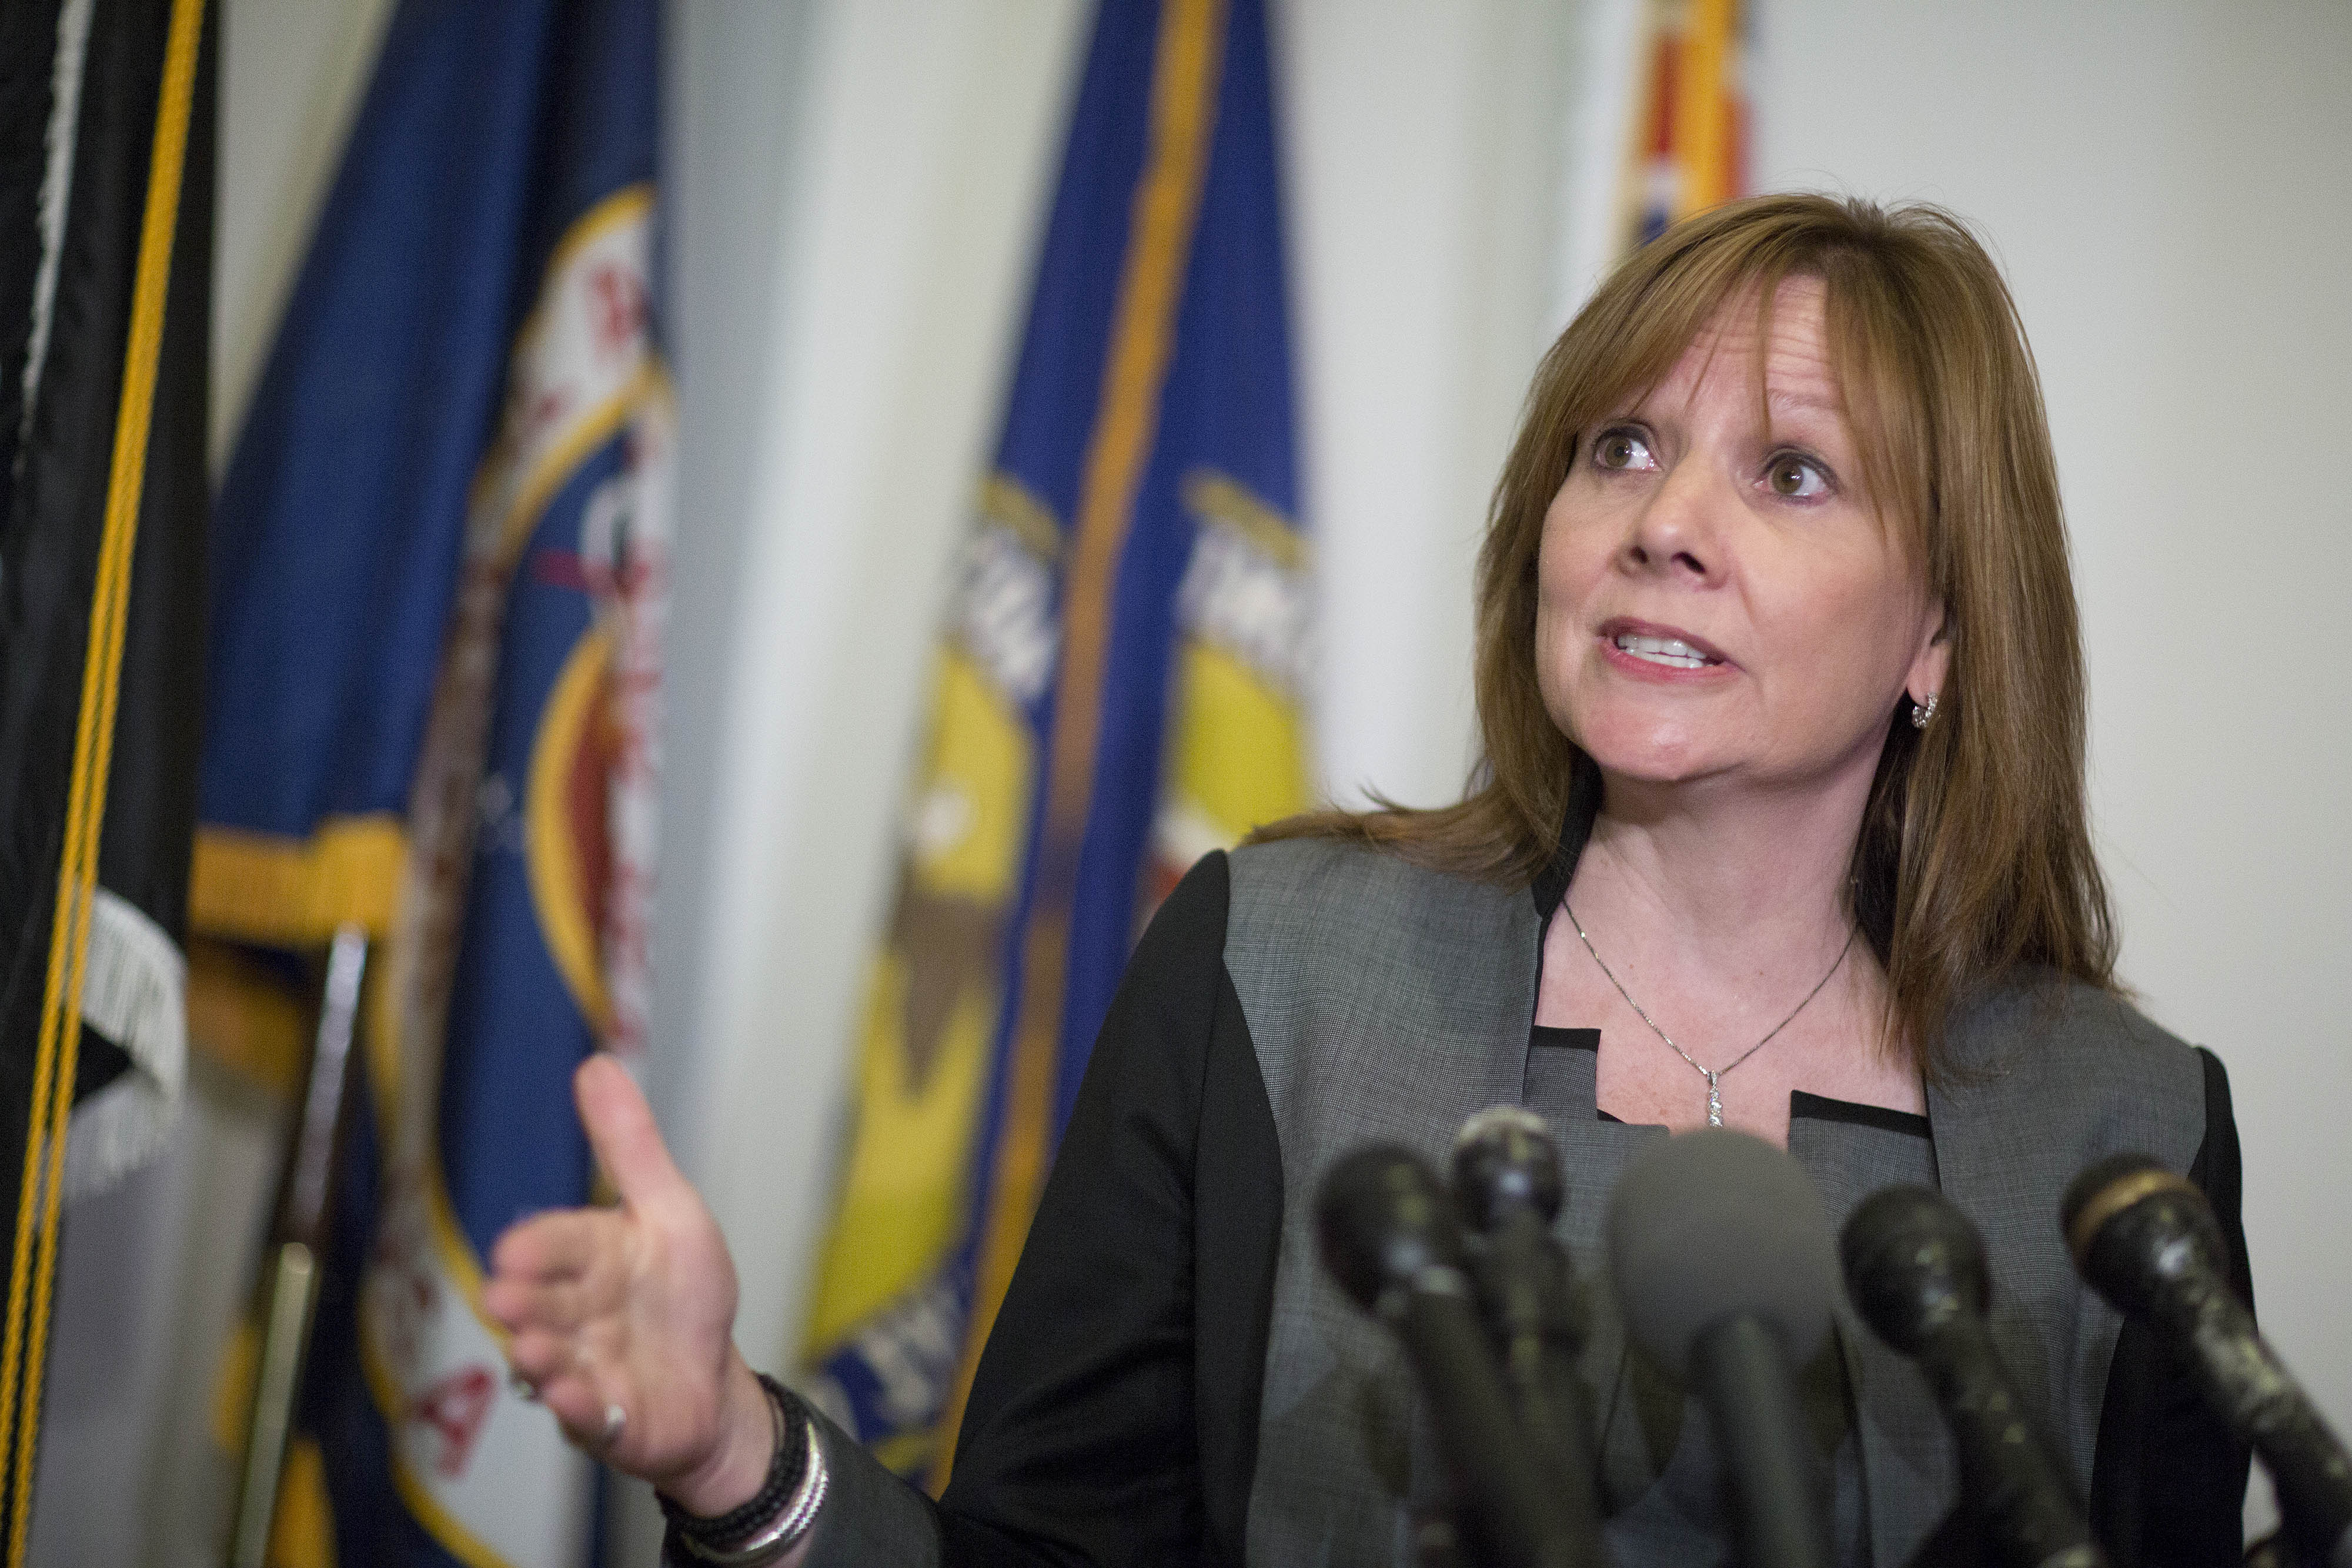 General Motors Co. Chief Executive Officer Mary Barra At Senate Hearing On Recalls